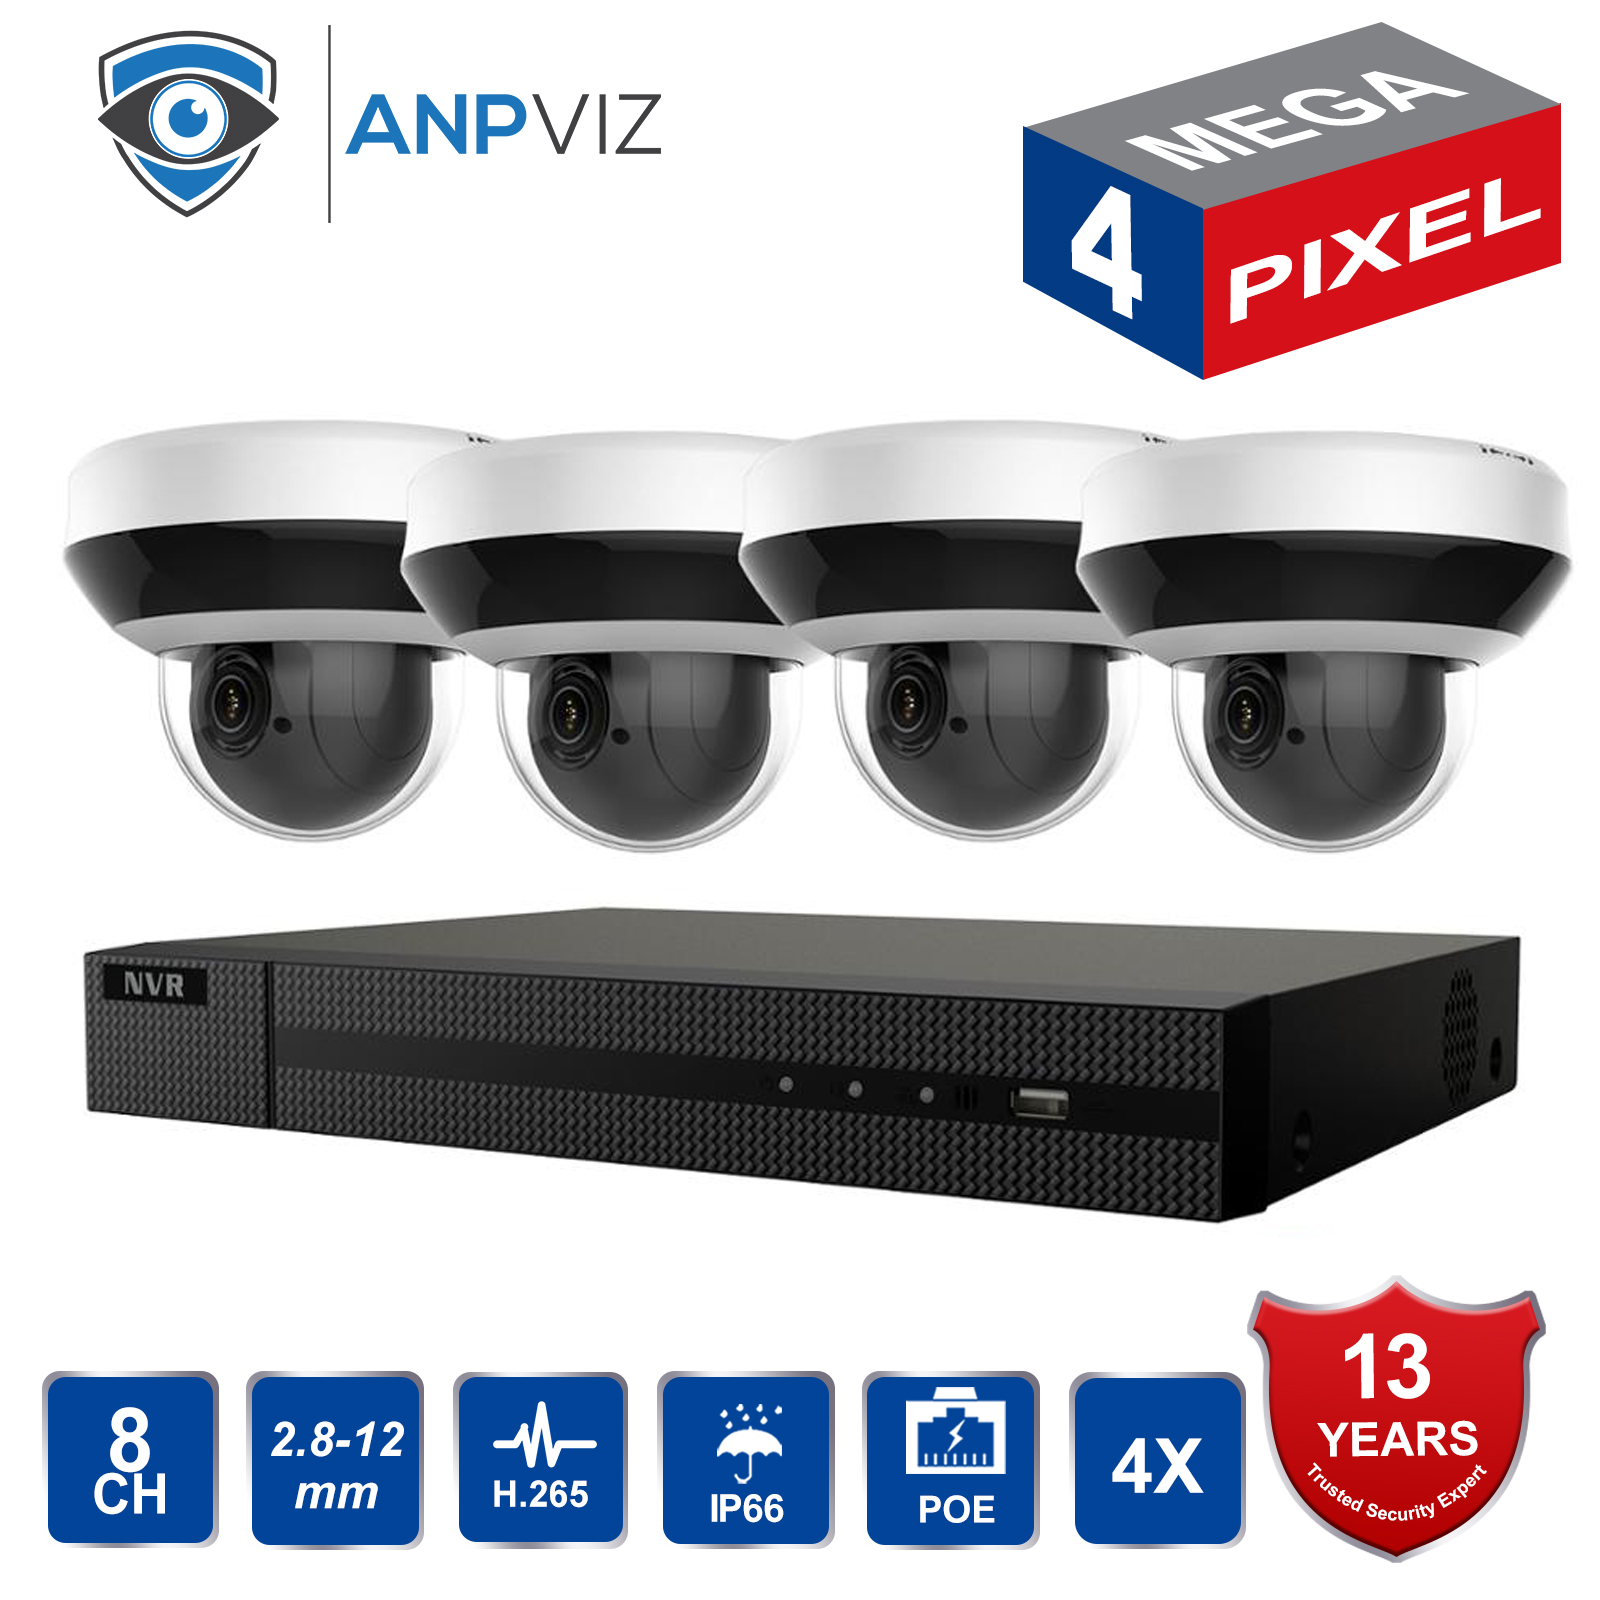 In Stock Hikvision H.265 8CH POE NVR KIT Outdoor CCTV Security System 4MP 4X Zoom PTZ IP Camera P2P Video Surveillance Set image